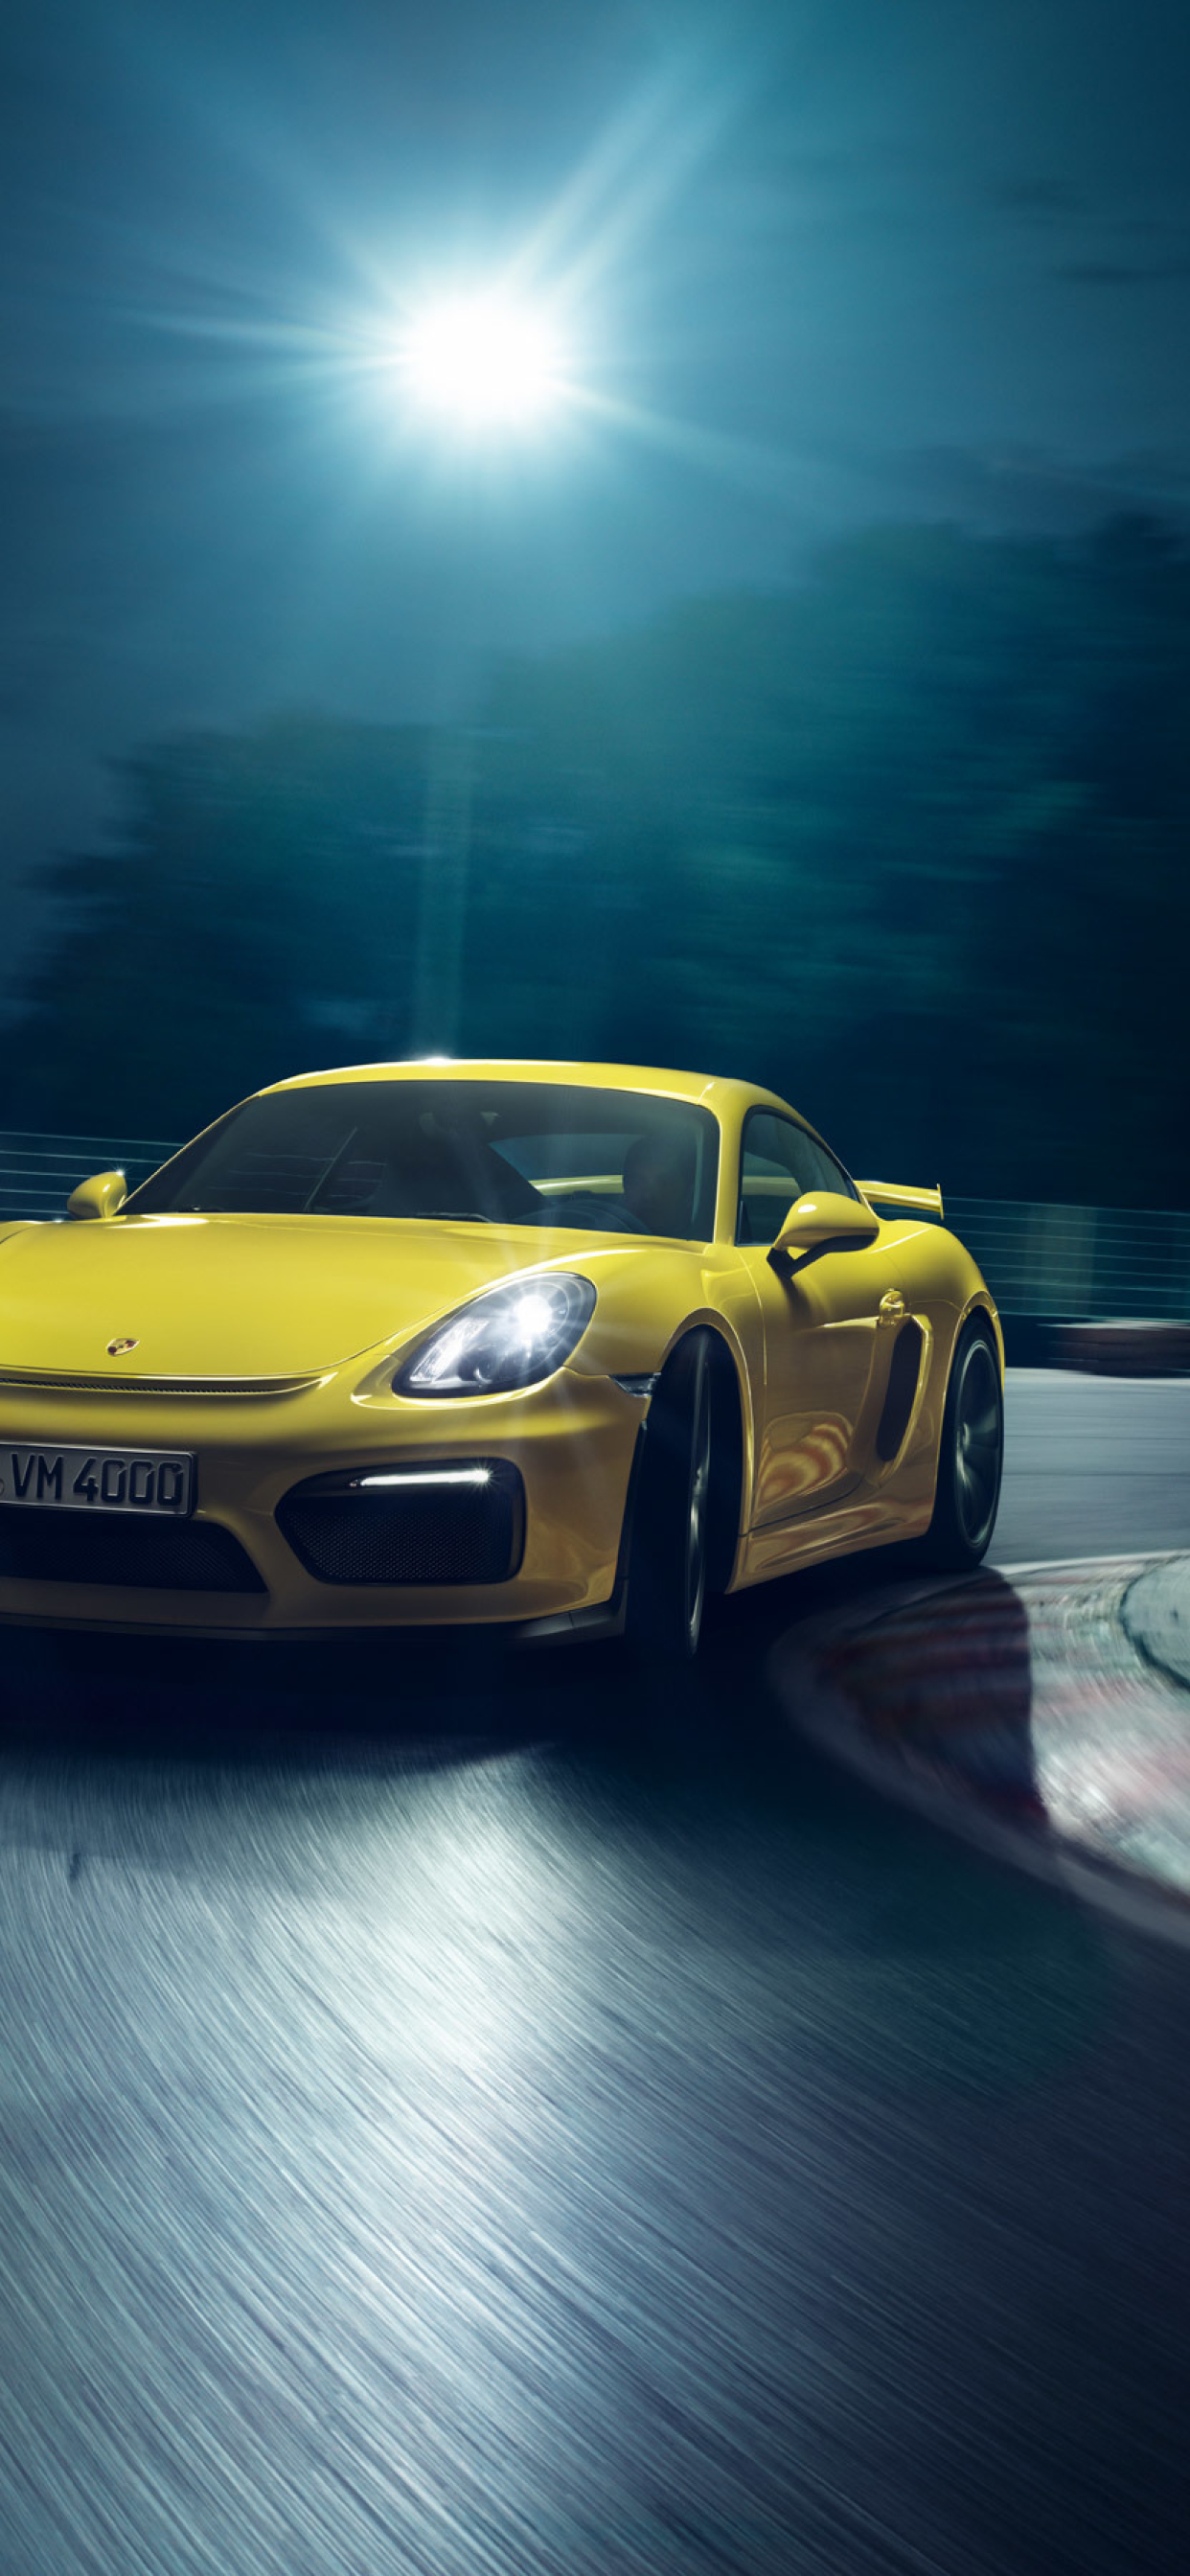 1242x2688 Porsche Cayman Gt4 Iphone Xs Max Wallpaper Hd Cars 4k Wallpapers Images Photos And Background